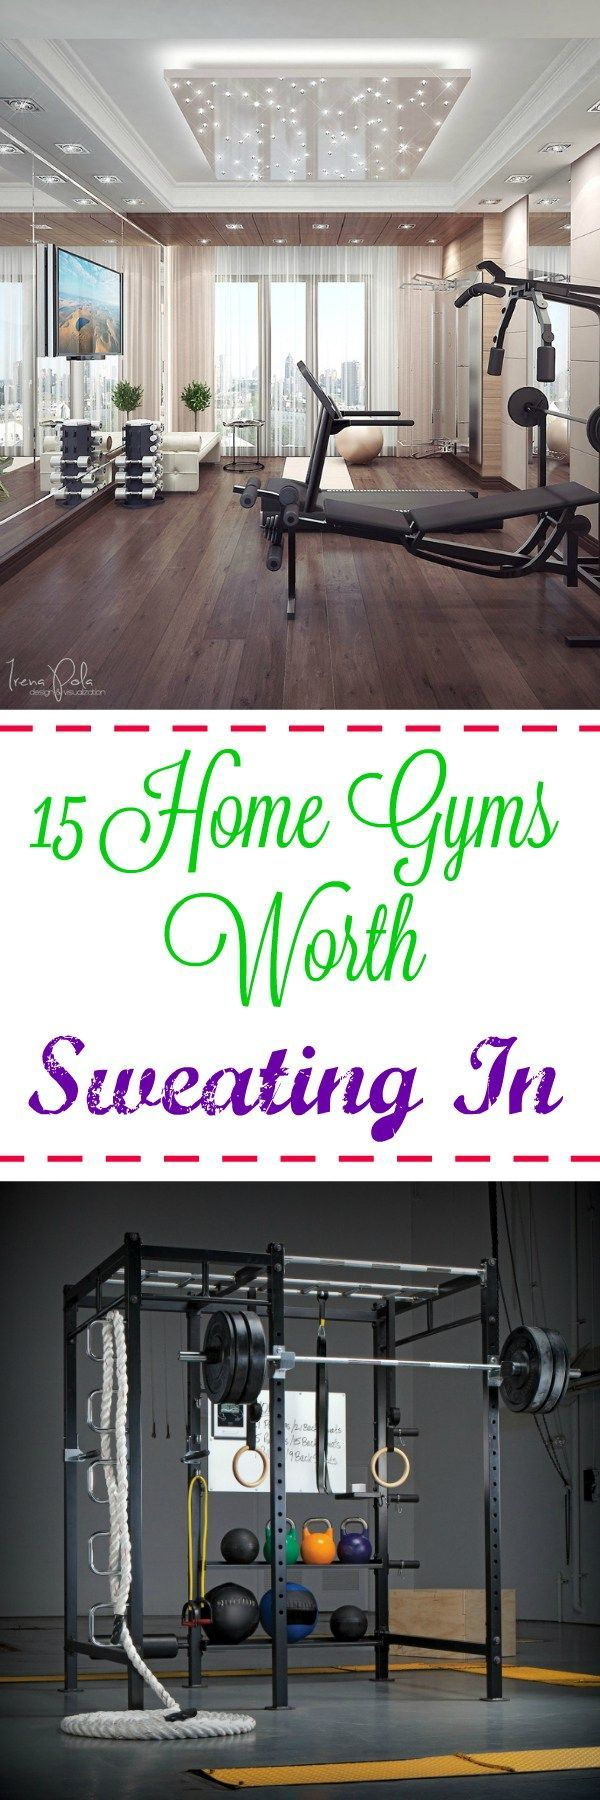 15 Home Gyms Worth Sweating In